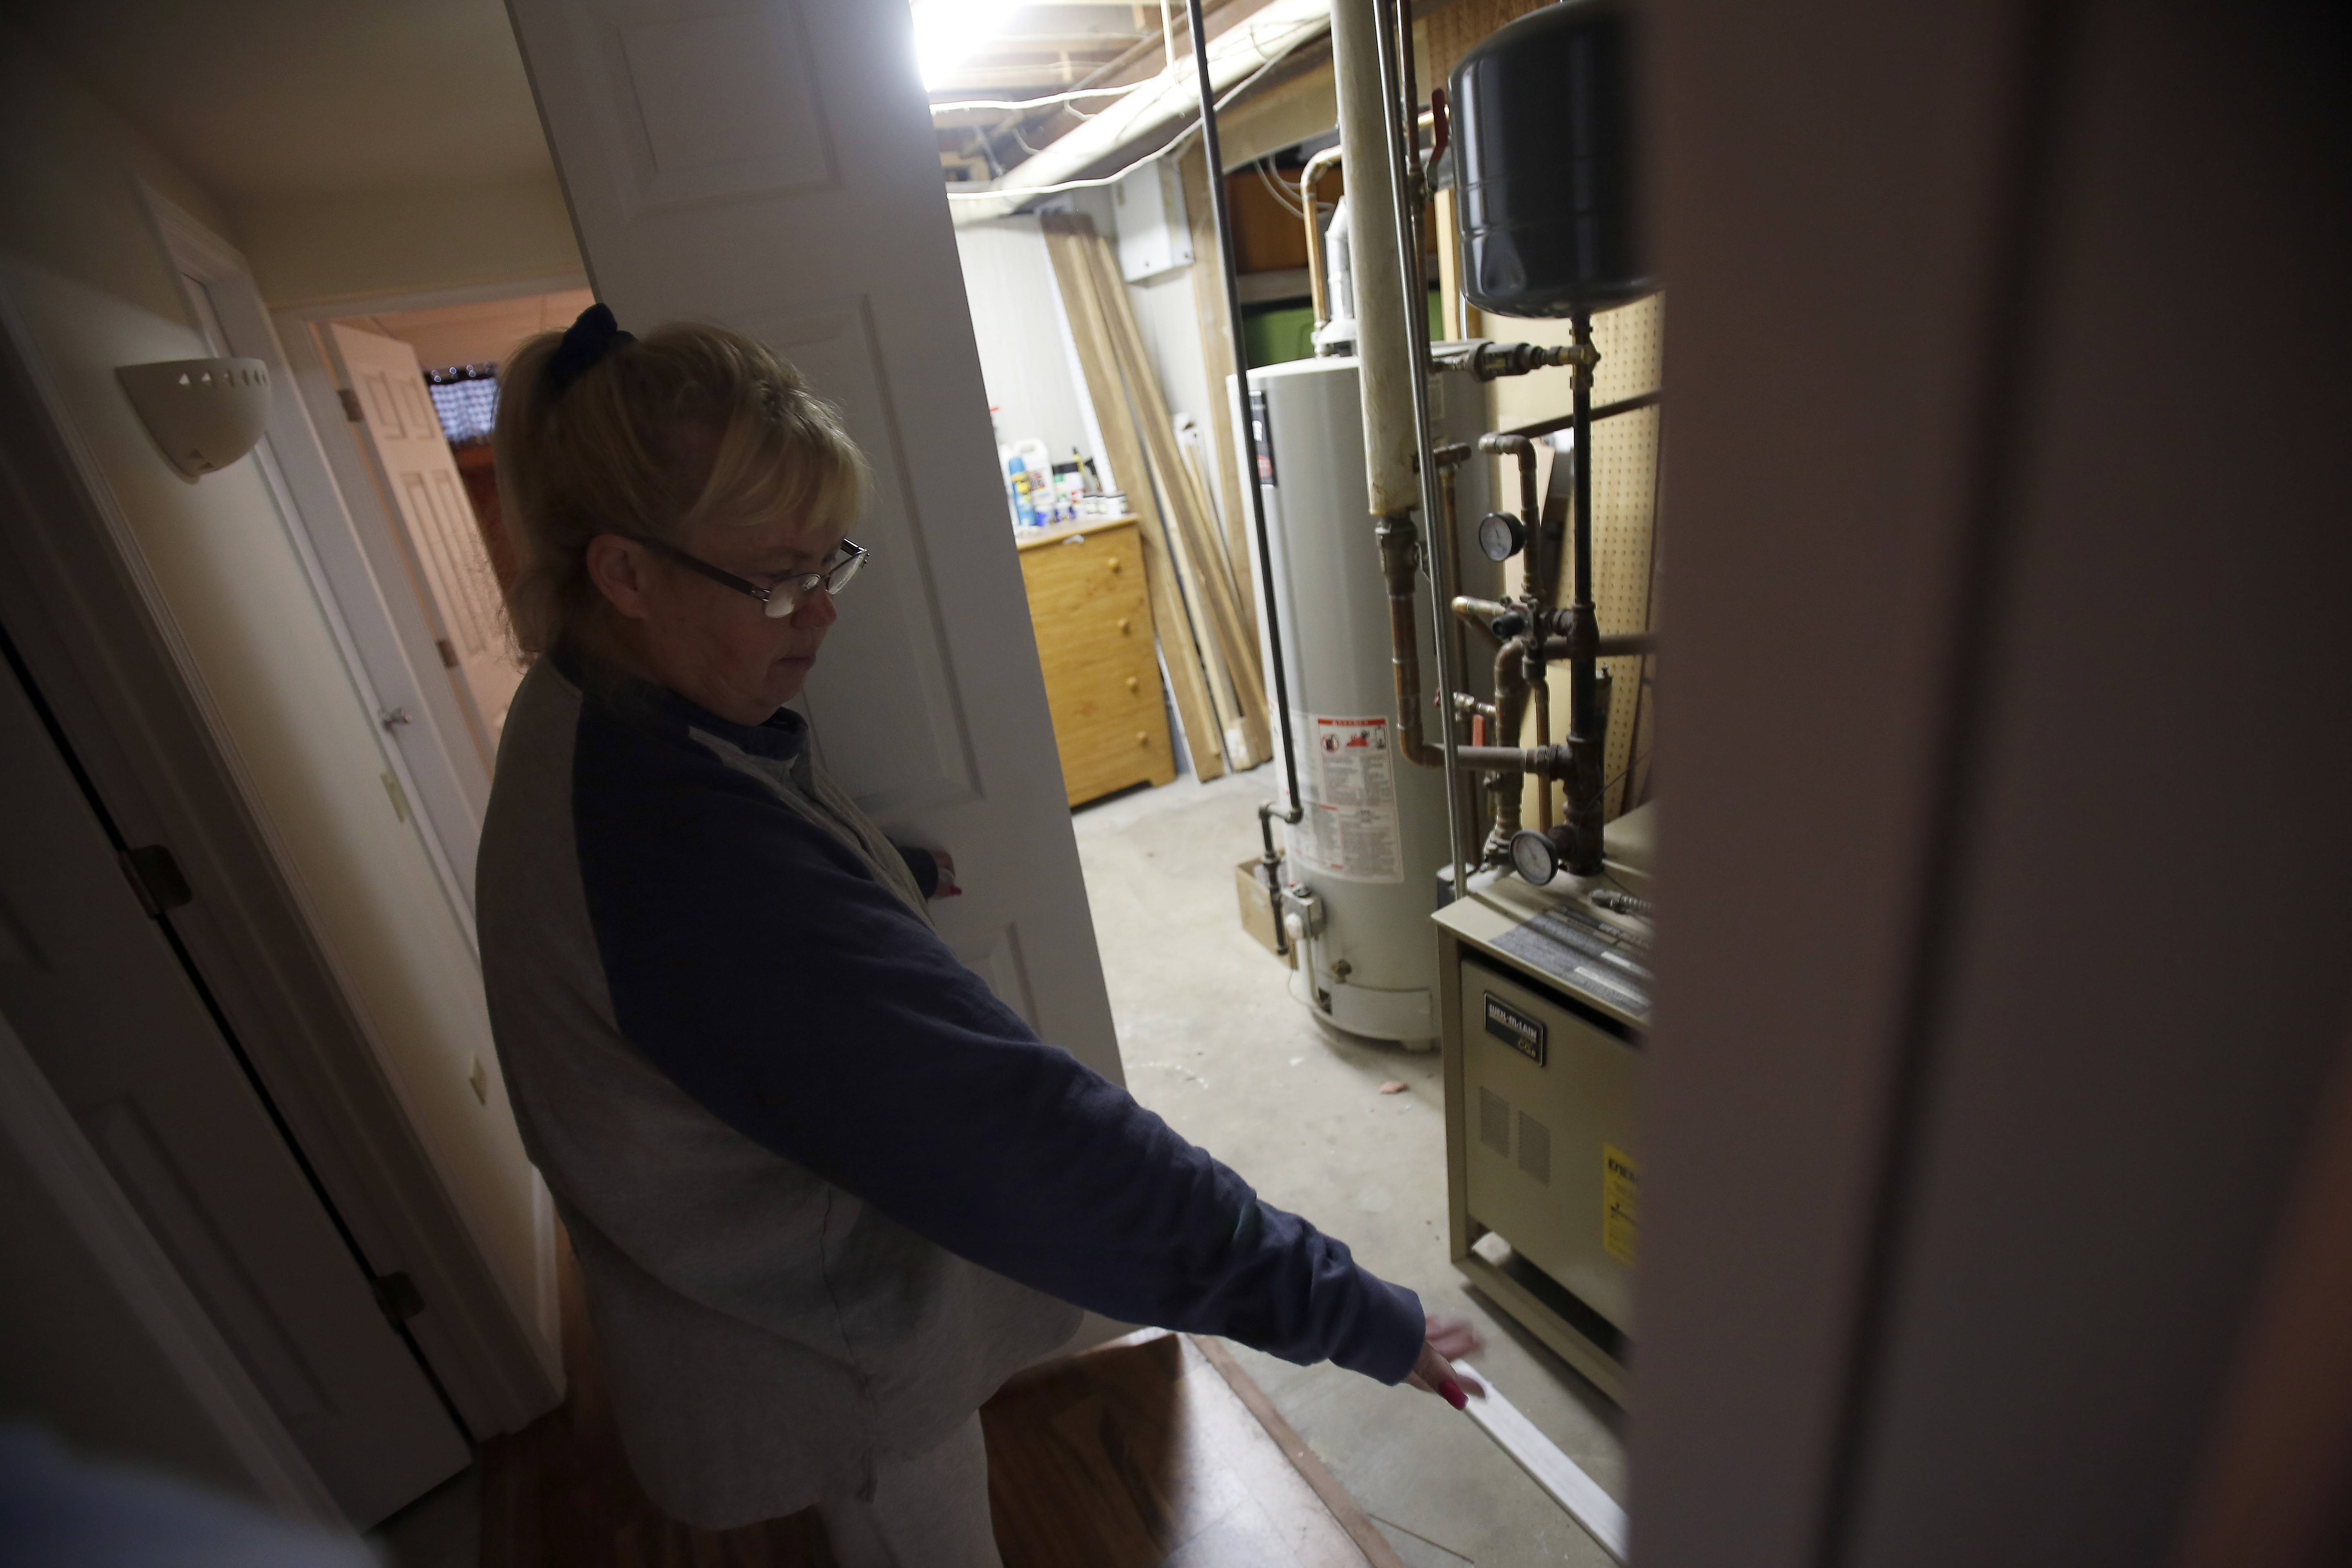 Marie Lagenbach points to an area near her furnace and water heater where she says sewer water came up.